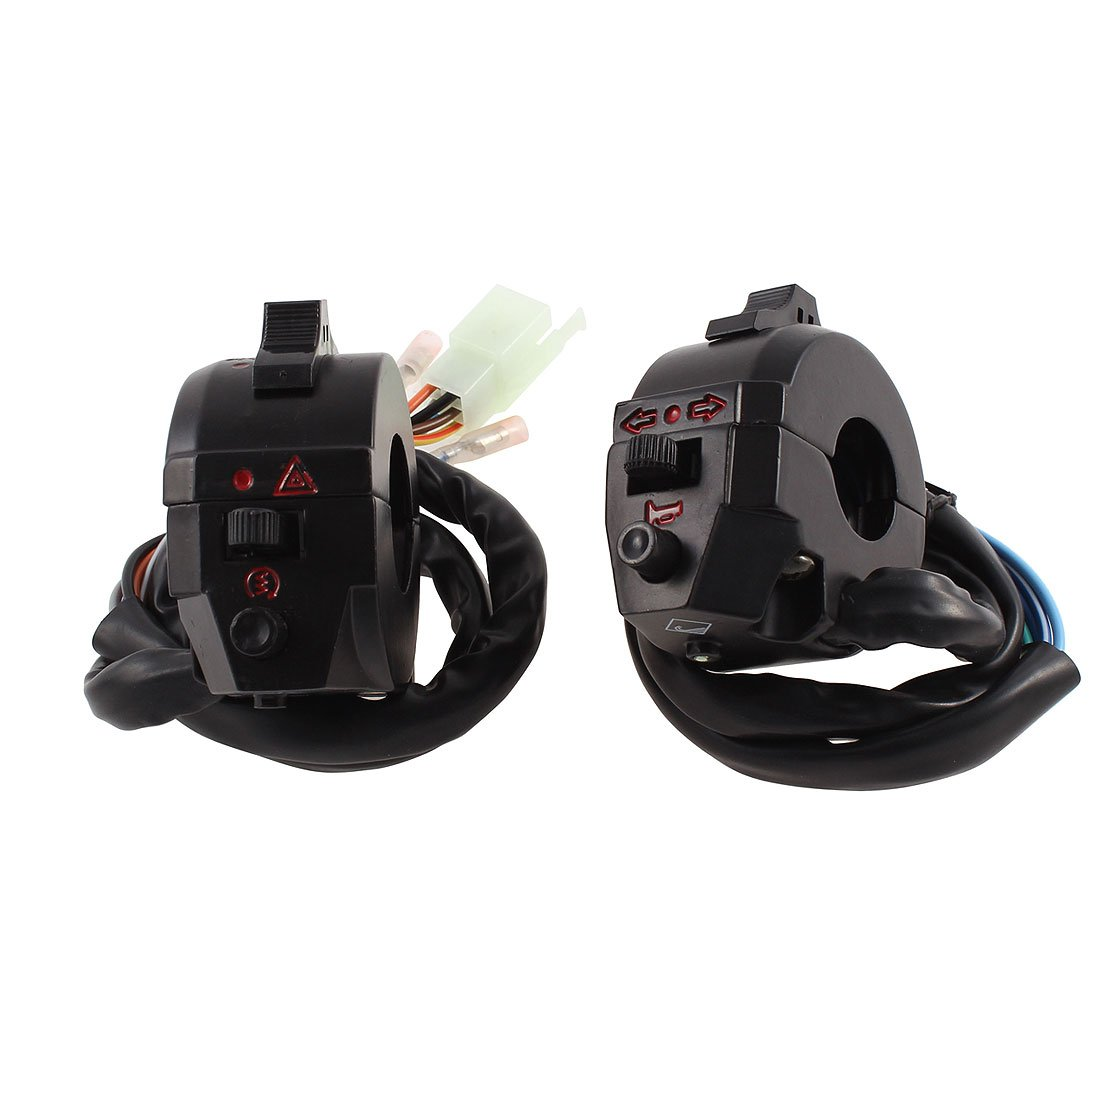 uxcell Motorcycle Emergency Light Starting Switch Set by uxcell